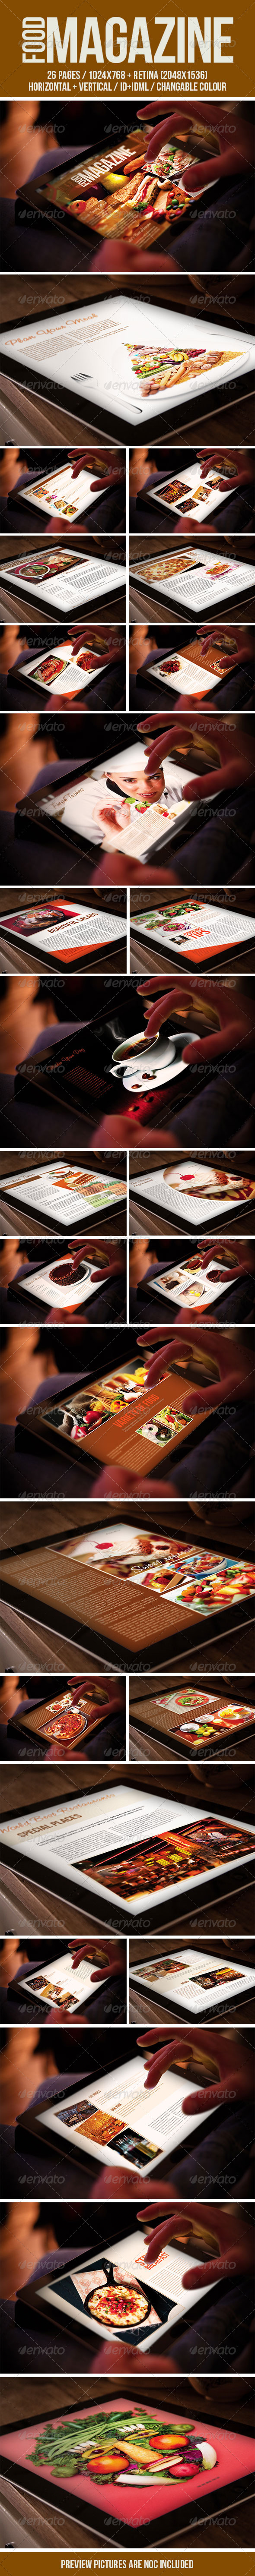 GraphicRiver Tablet Food Magazine Template 7374872